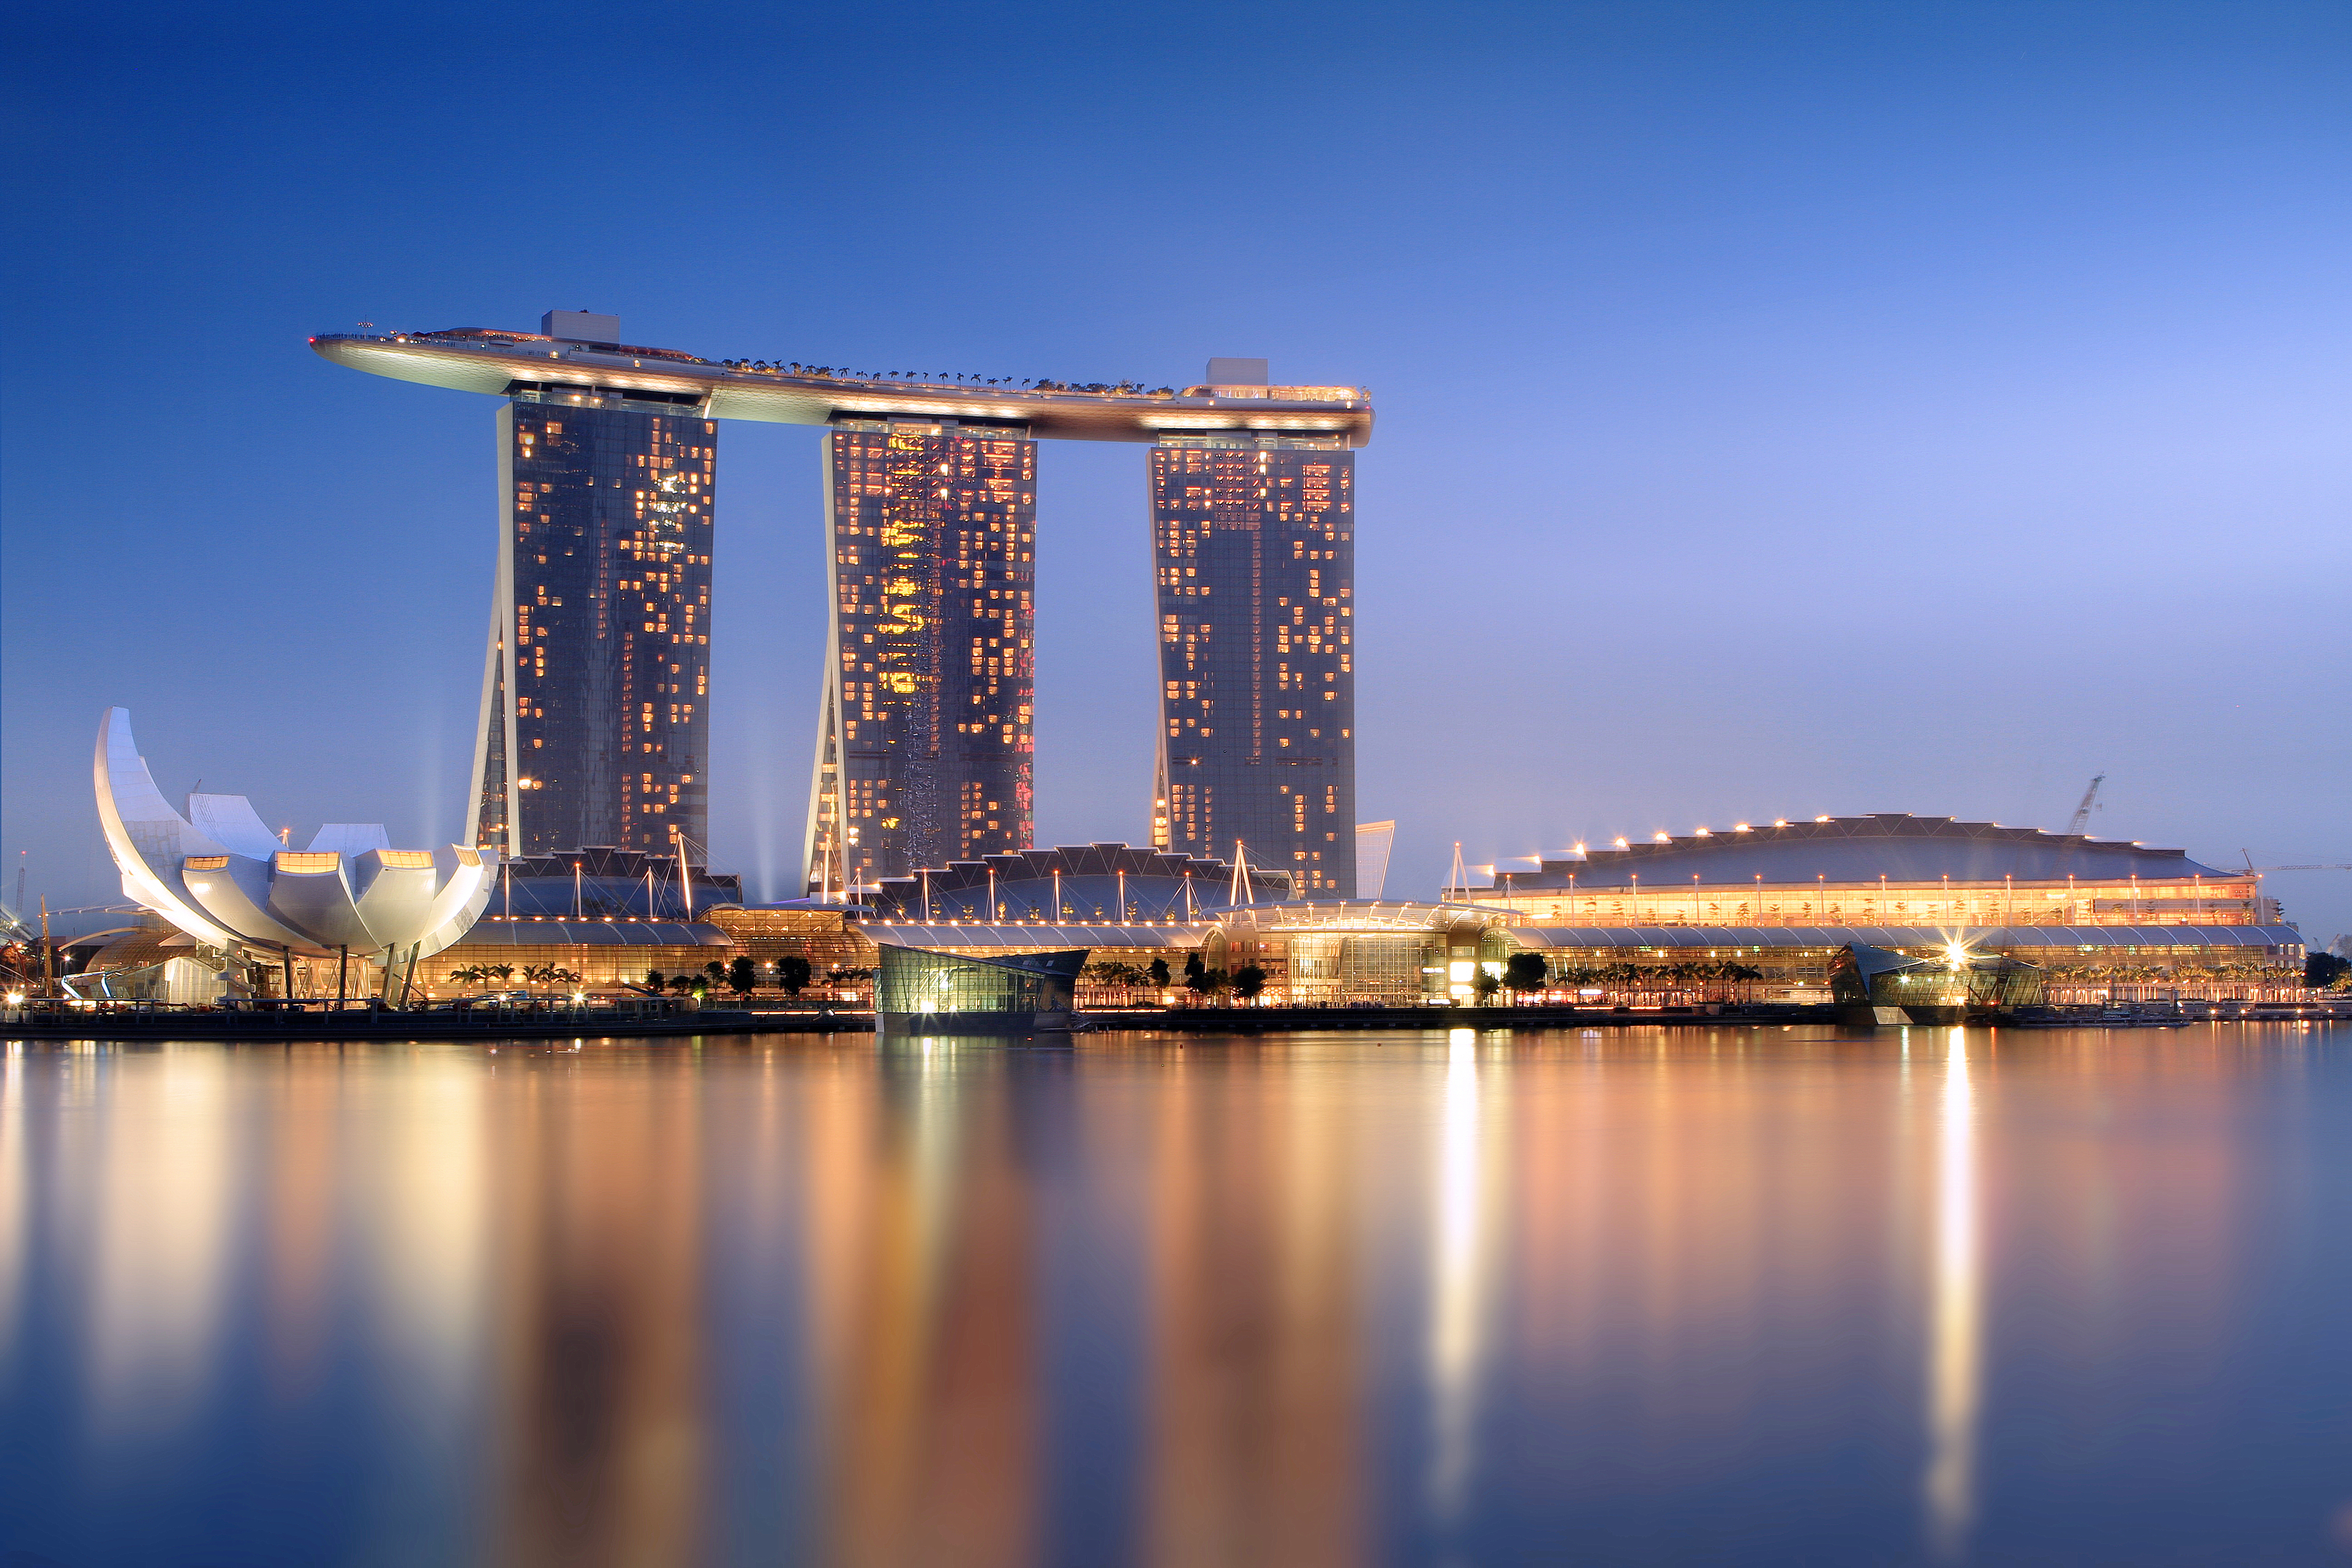 Marina_Bay_Sands_in_the_evening_-_201011